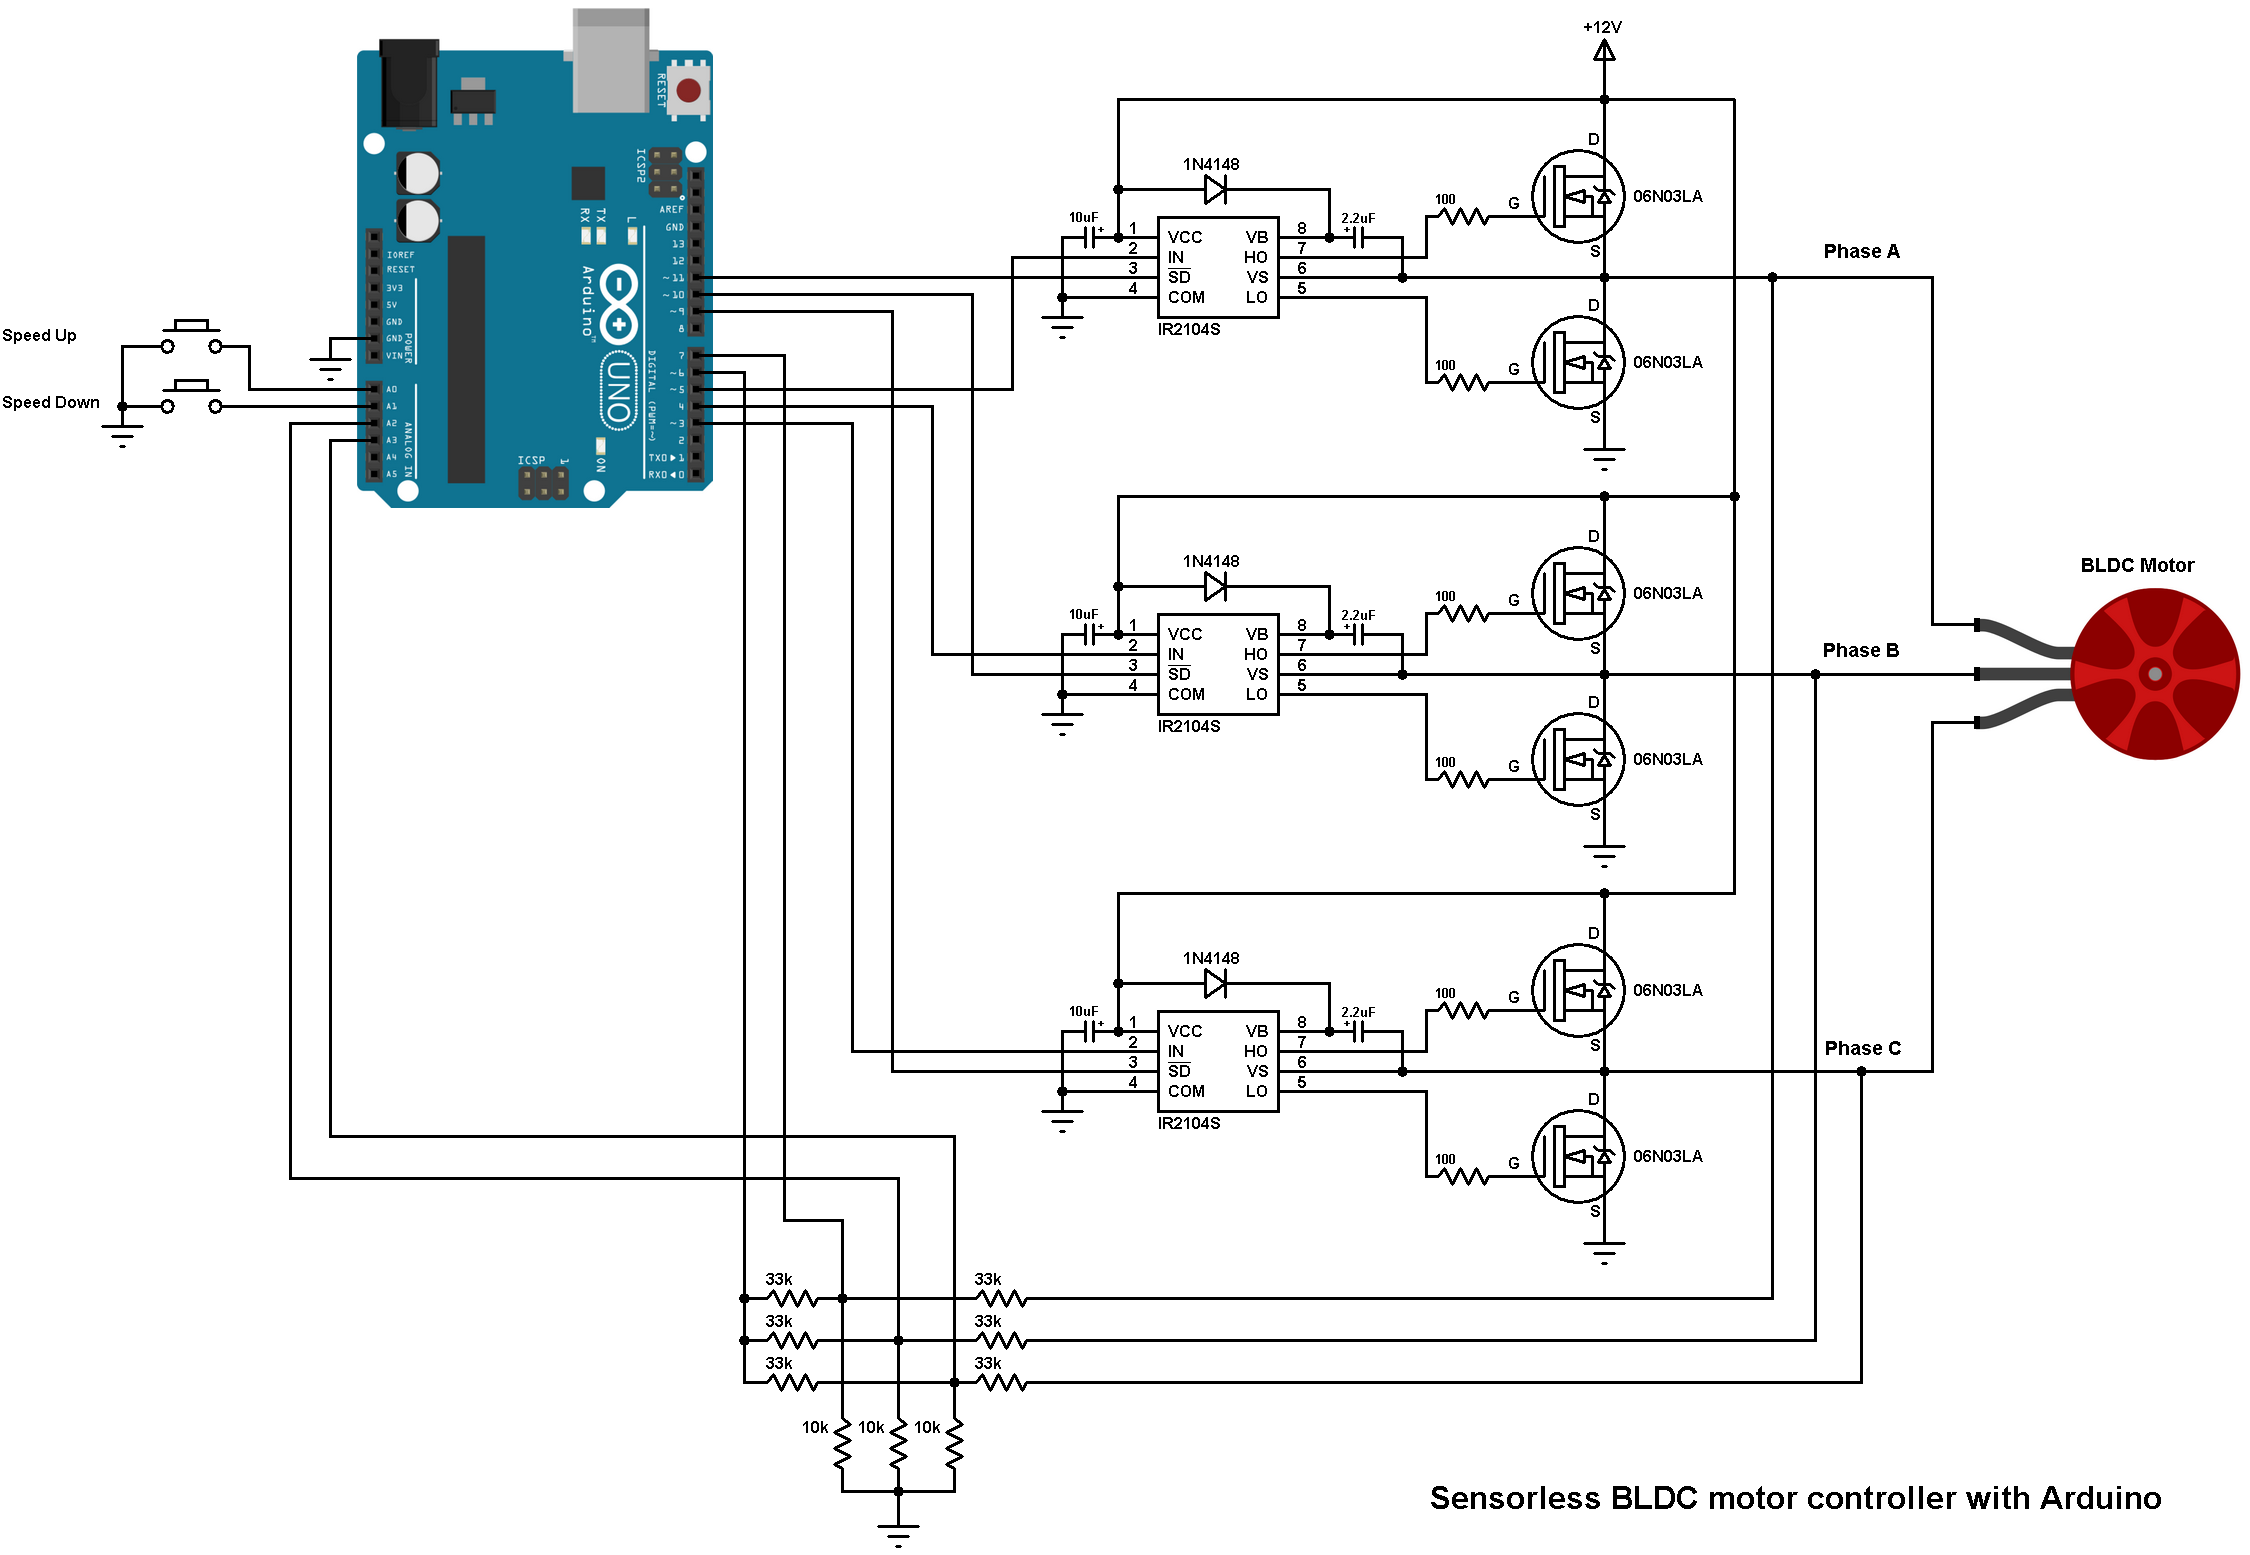 sensorless bldc motor control with arduino diy esc circuit diagram of the bldc motor